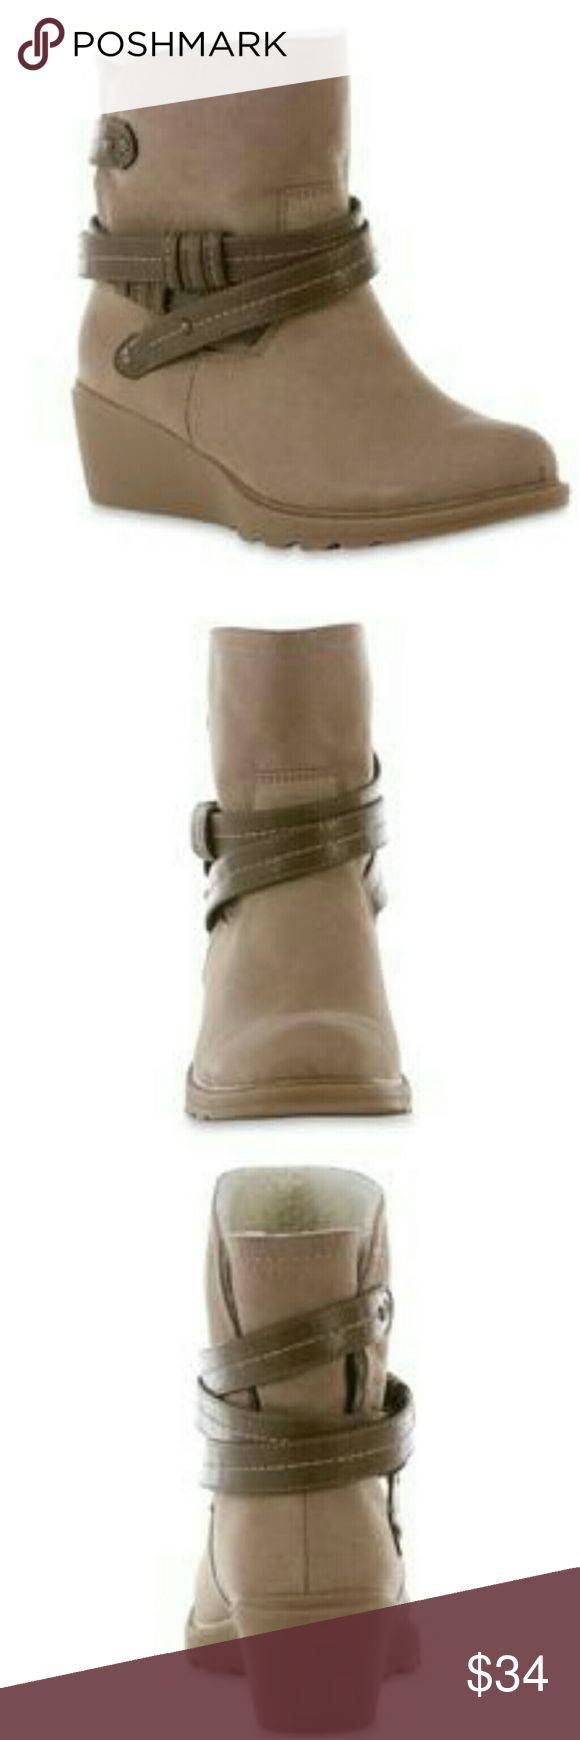 Rosette Taupe Ankle Bootie Brand new without box, soft microsuede, detailed with crisscross straps, fleece lining,  slip on booties, cushioned insole, treaded rubber outsole. Joe Boxer Shoes Ankle Boots & Booties